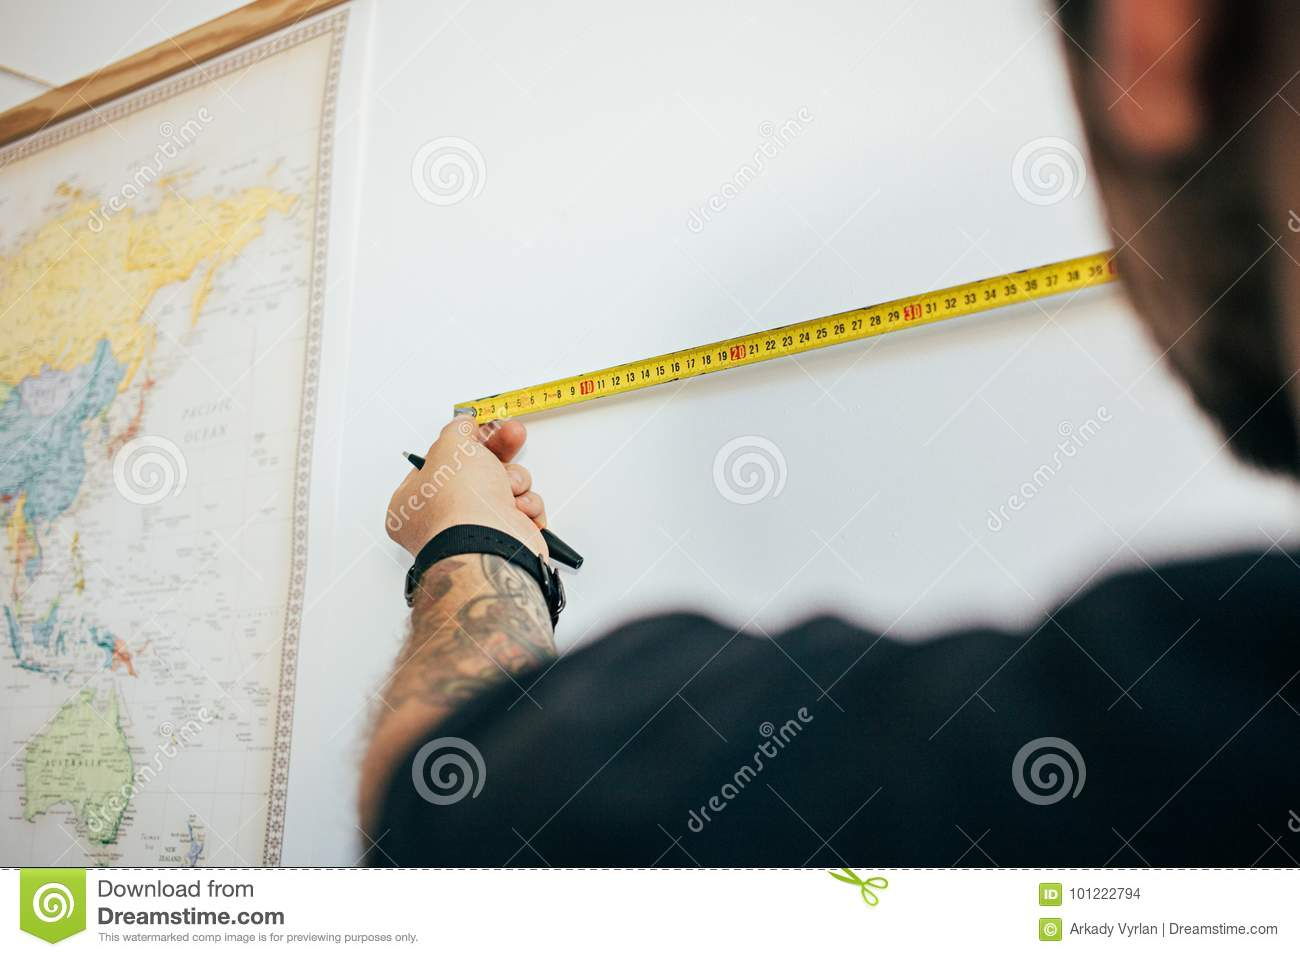 Man measures wall with measuring tape